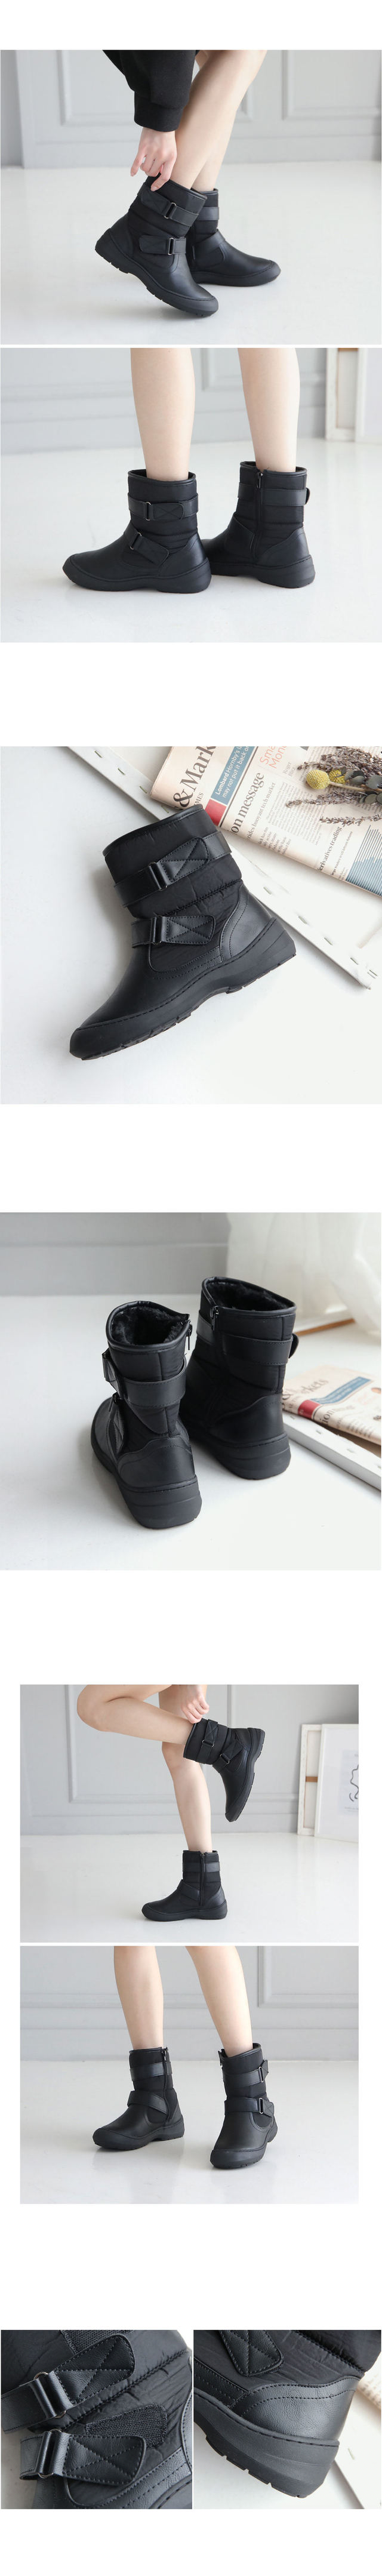 Ronence Velcro Faded Boots 4cm